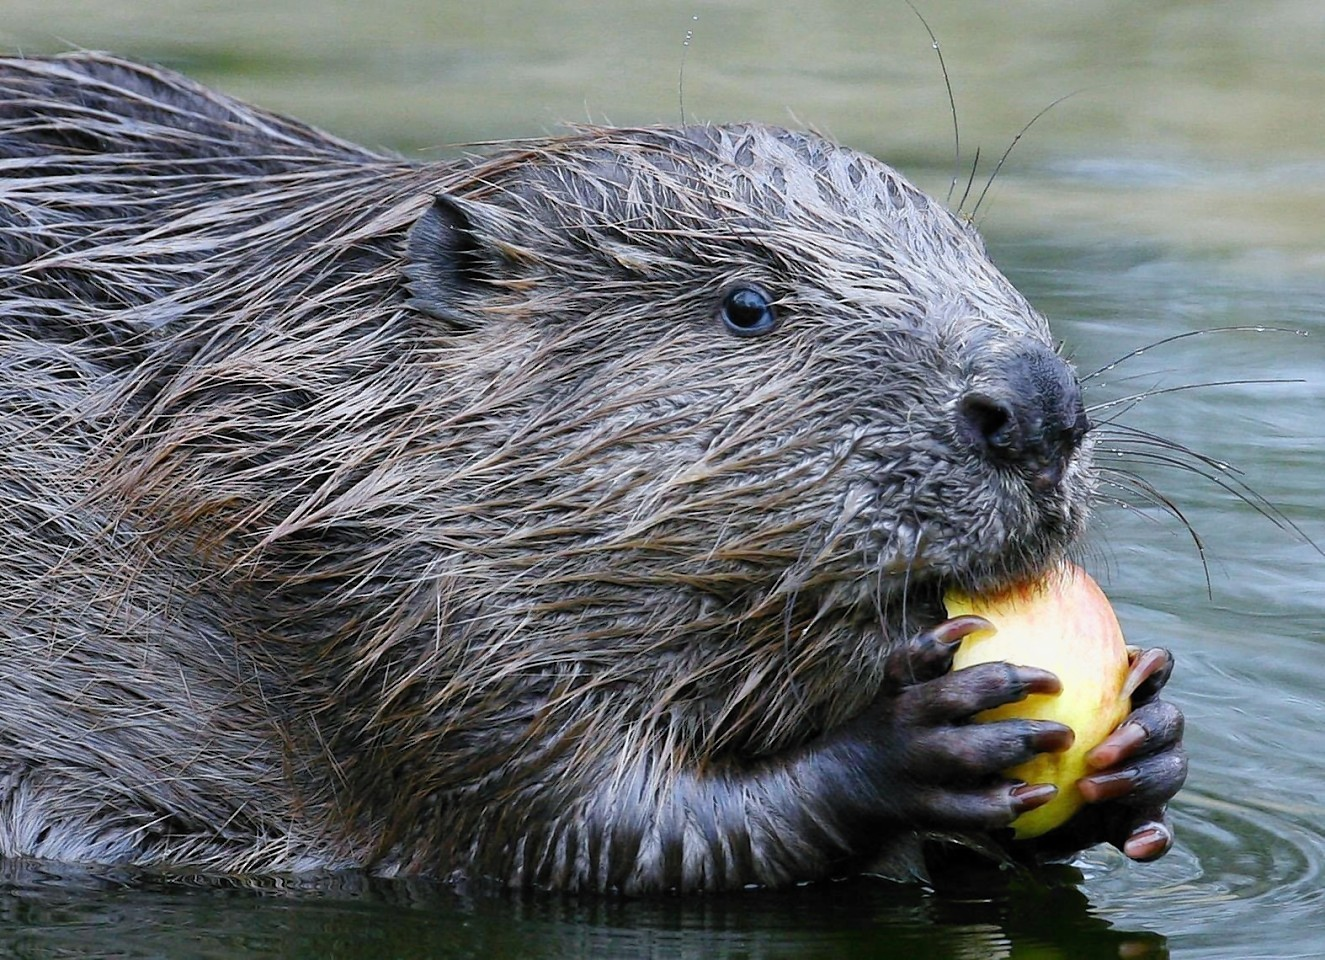 The Scottish Government are due to decide on whether Eurasian beavers will be allowed to live freely in Scotland after an absence of some 500 years